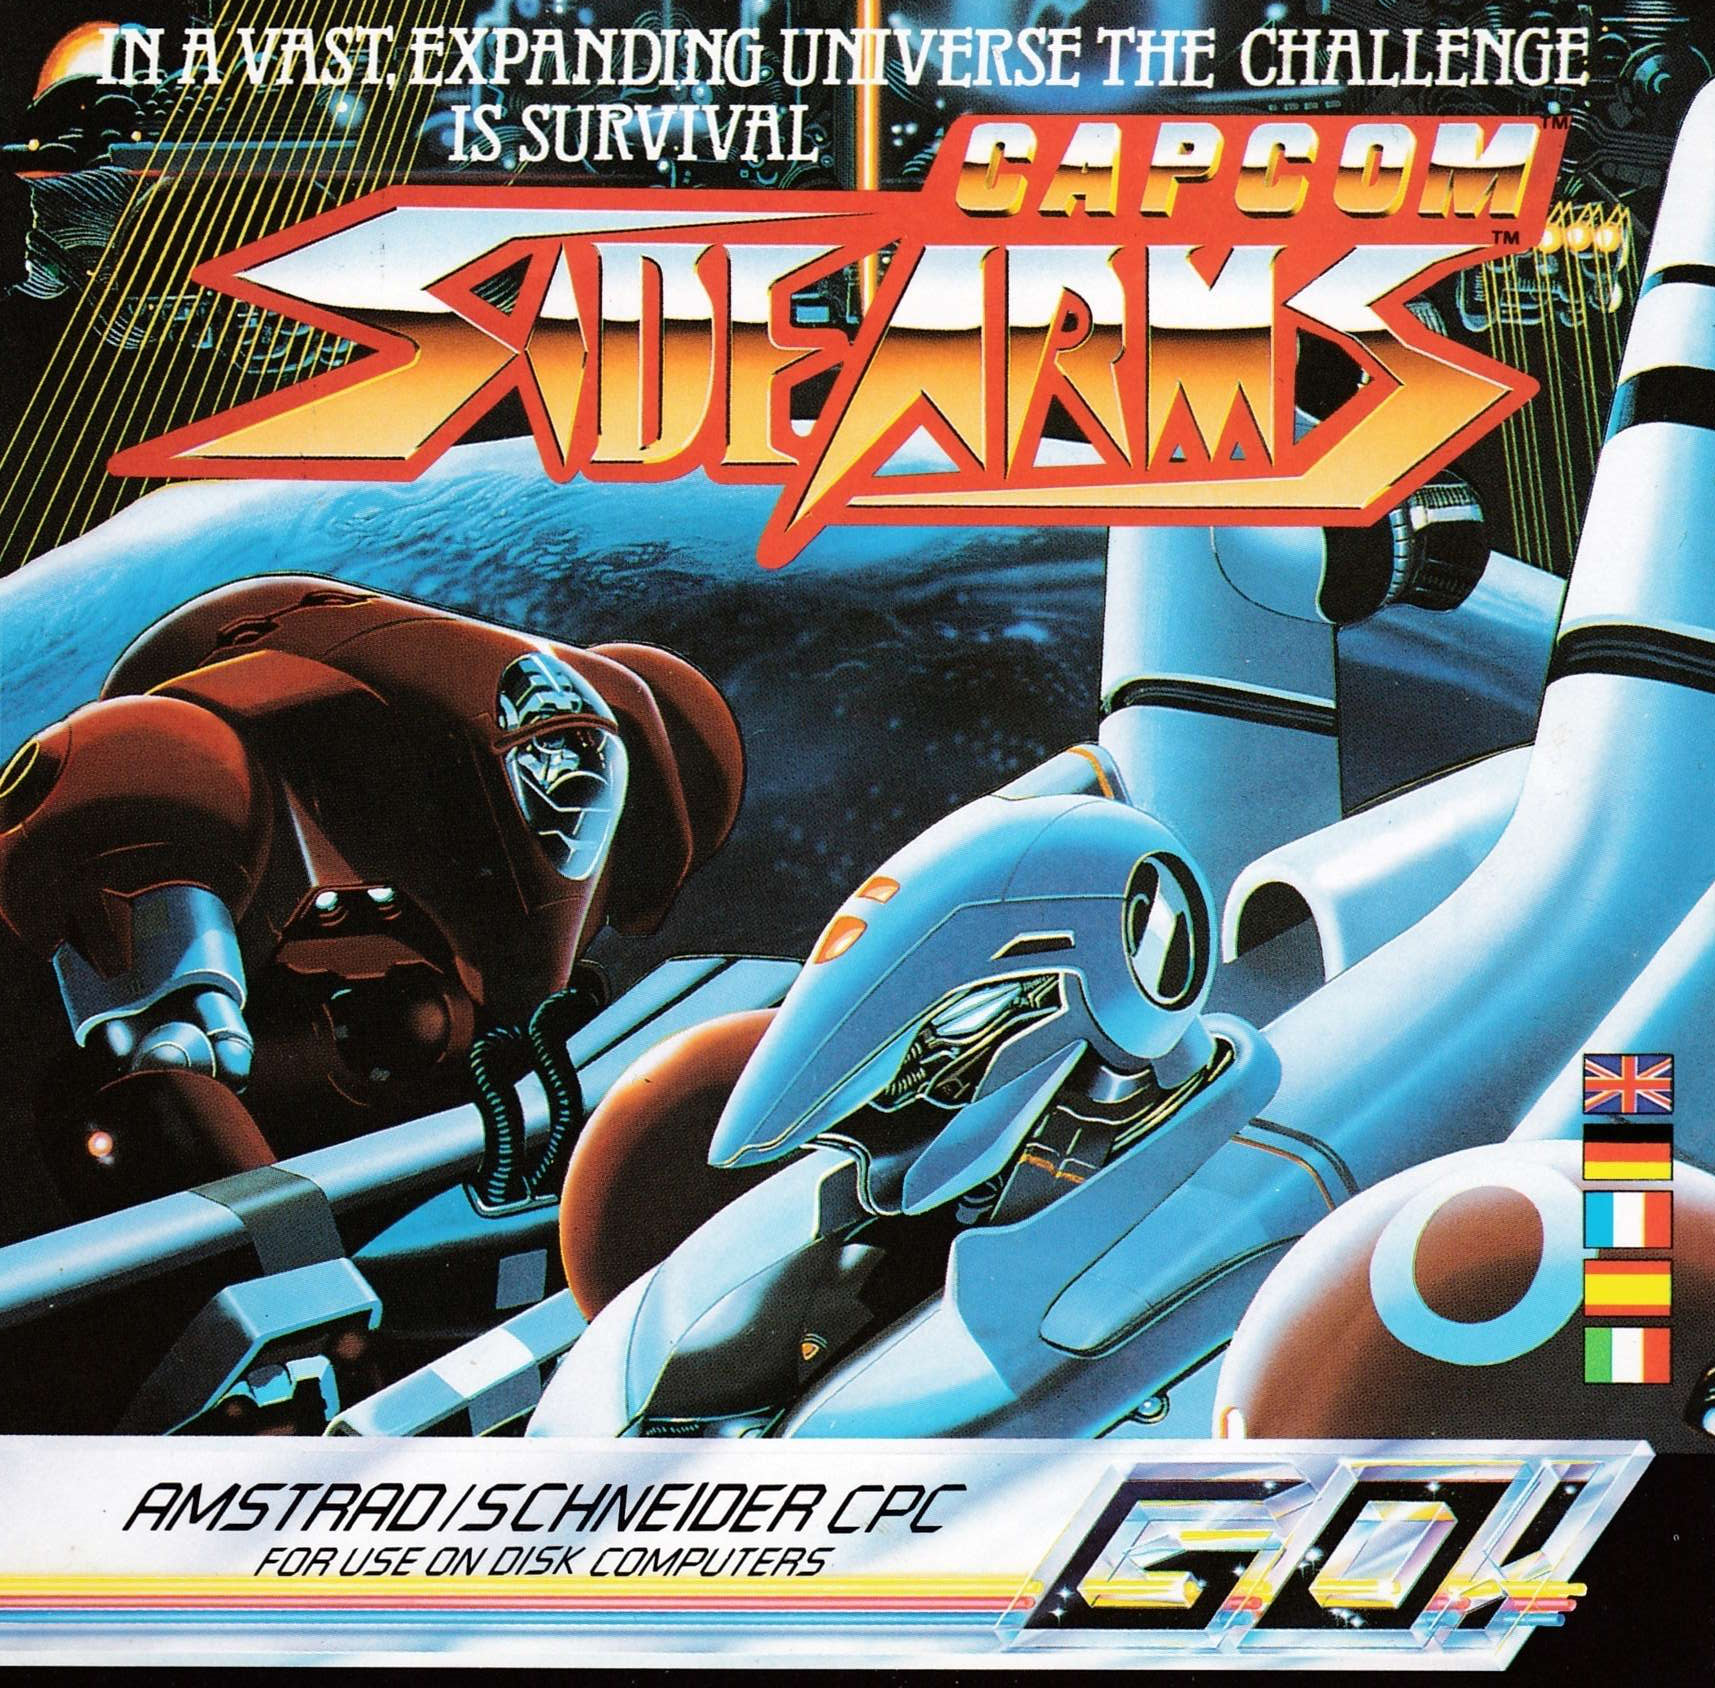 cover of the Amstrad CPC game Side Arms  by GameBase CPC